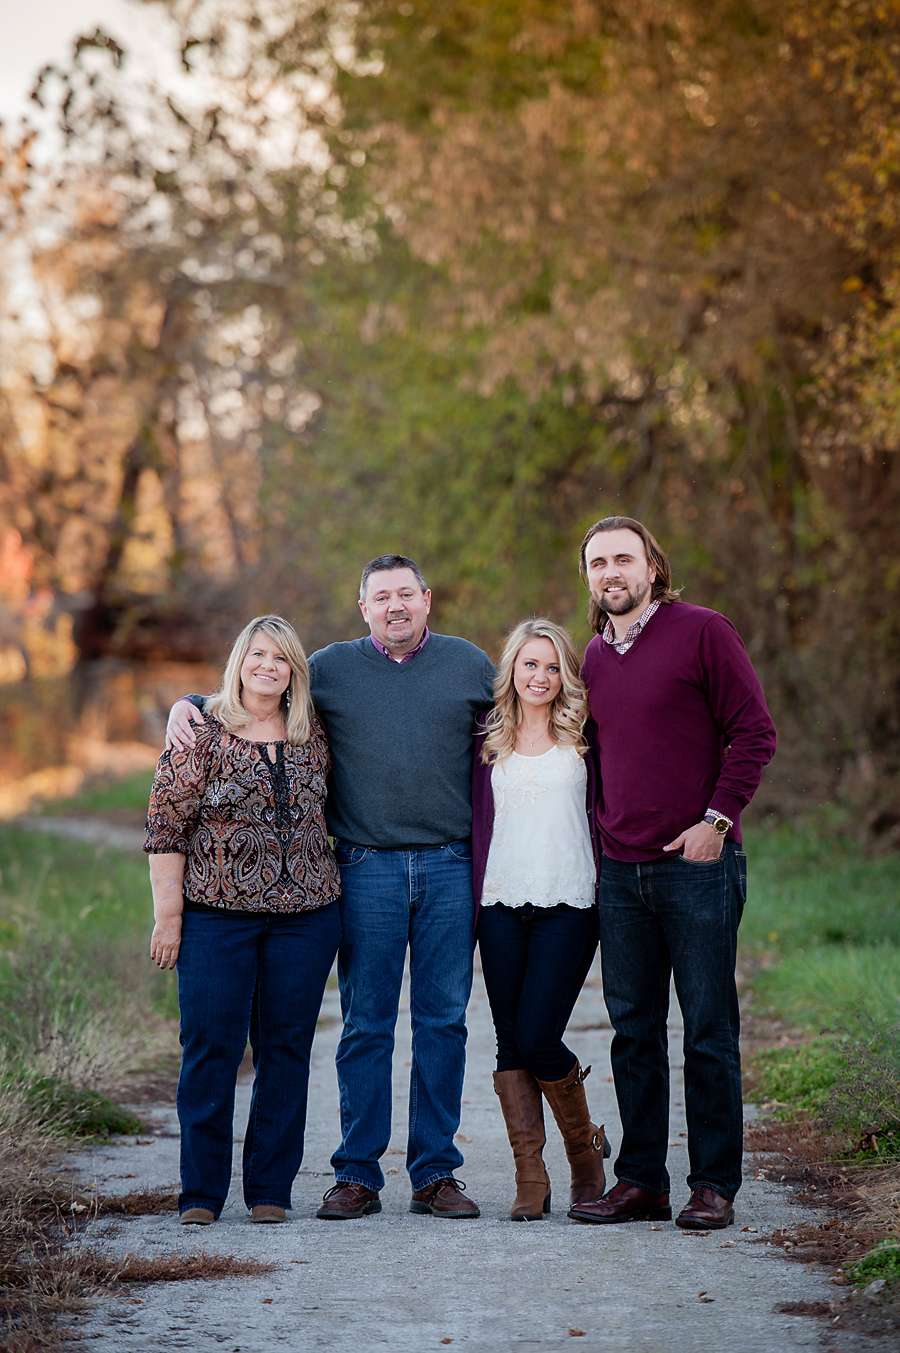 16-Kansas City Family Photographer.jpg